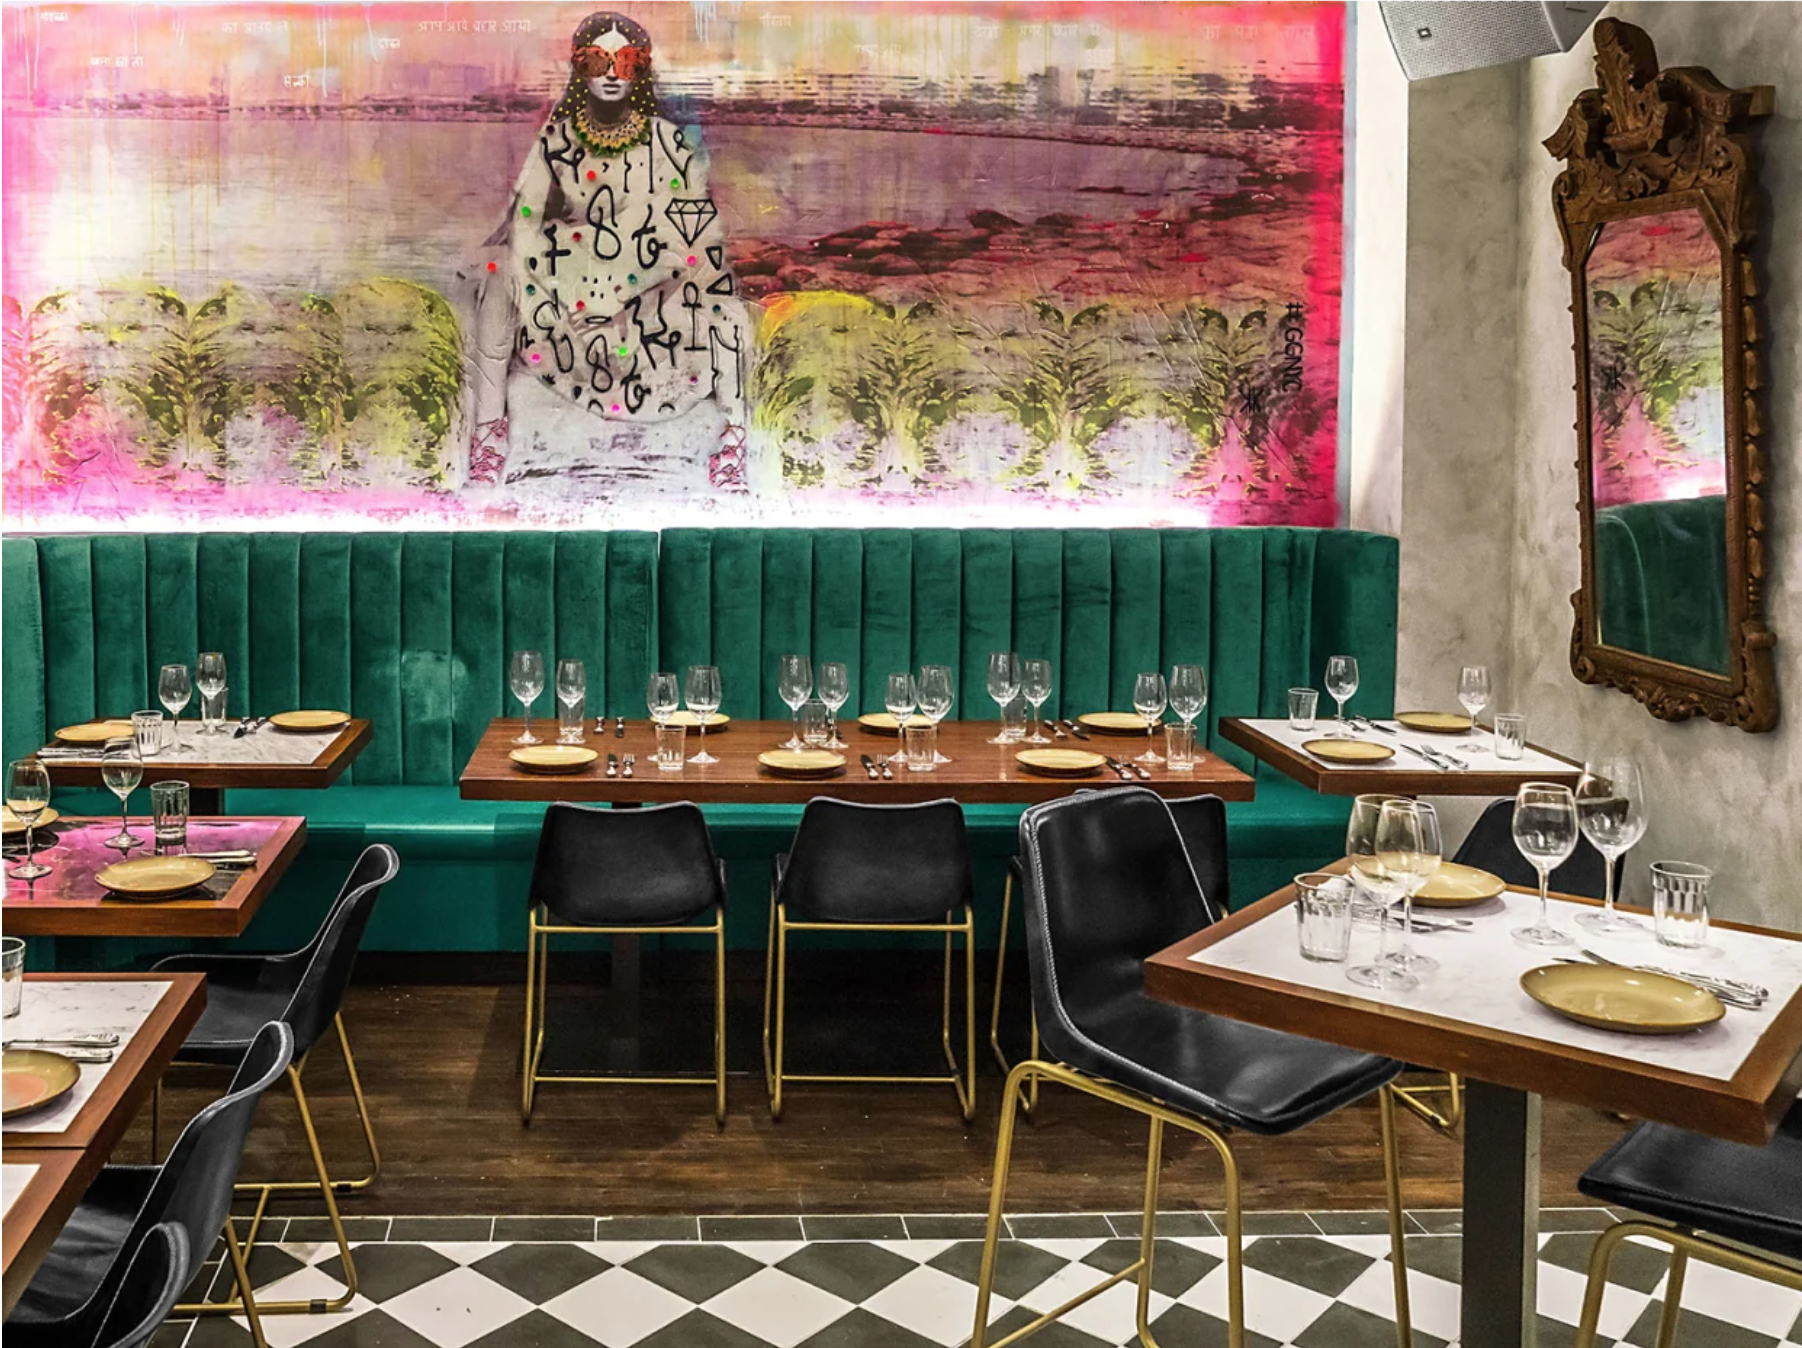 """Mural at GupShupNew York City, 2019 - Featured by Rachel Ray Every Day""""It's a little Bombay in the middle of the Gramercy Park neighborhood."""" (READ MORE)"""